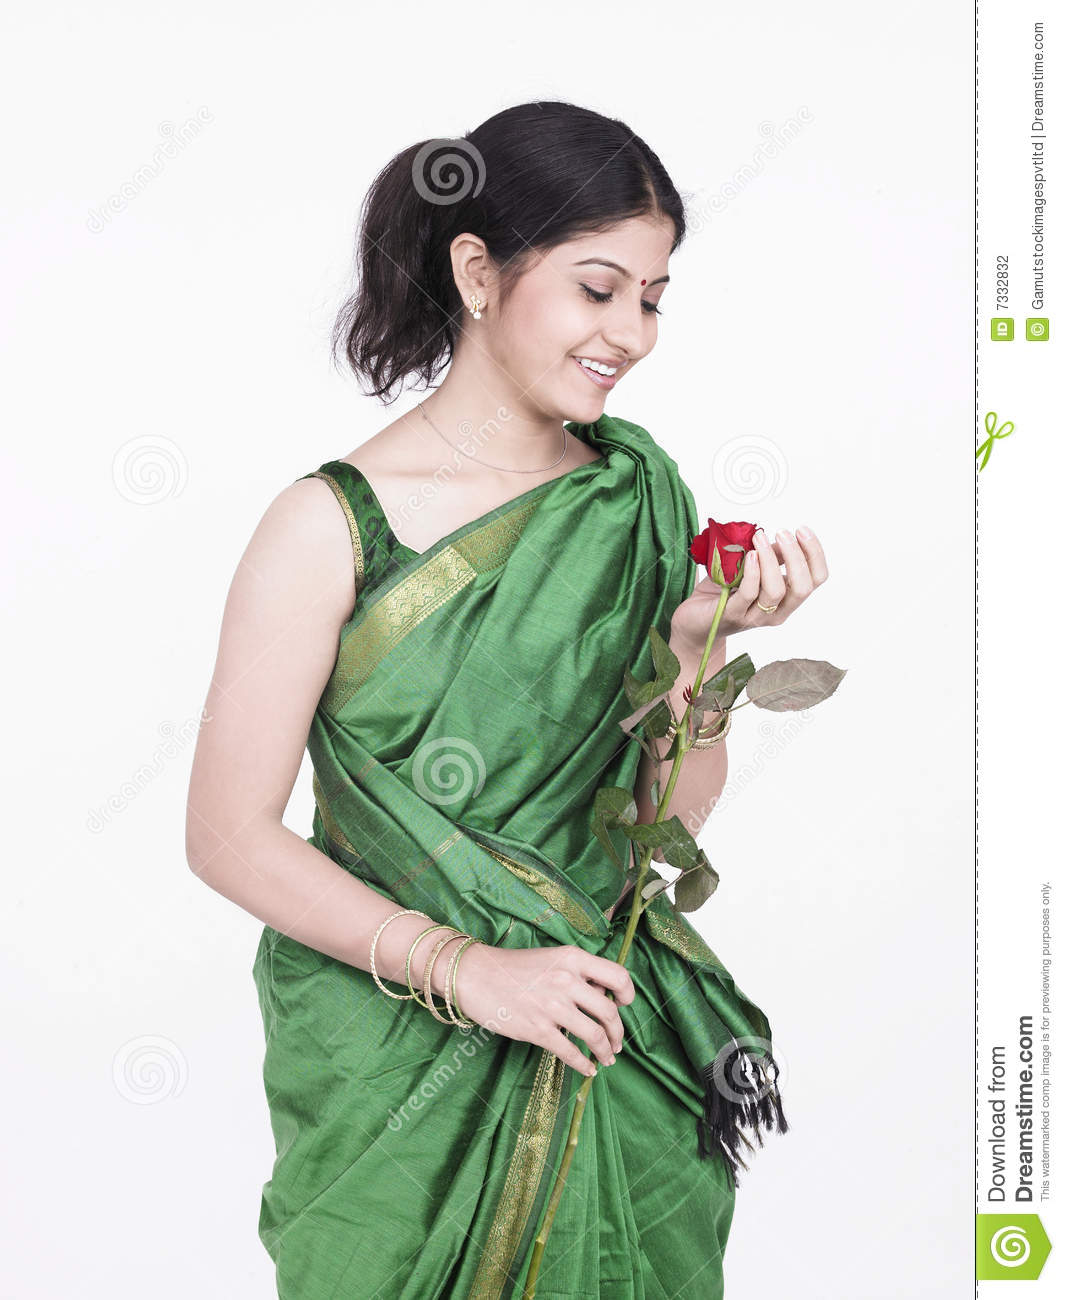 rose asian singles Explore datingcom and enjoy a global online dating website that offers real adventure worldwide dating is the best for those ready to experience a dating site with a truly global dating.